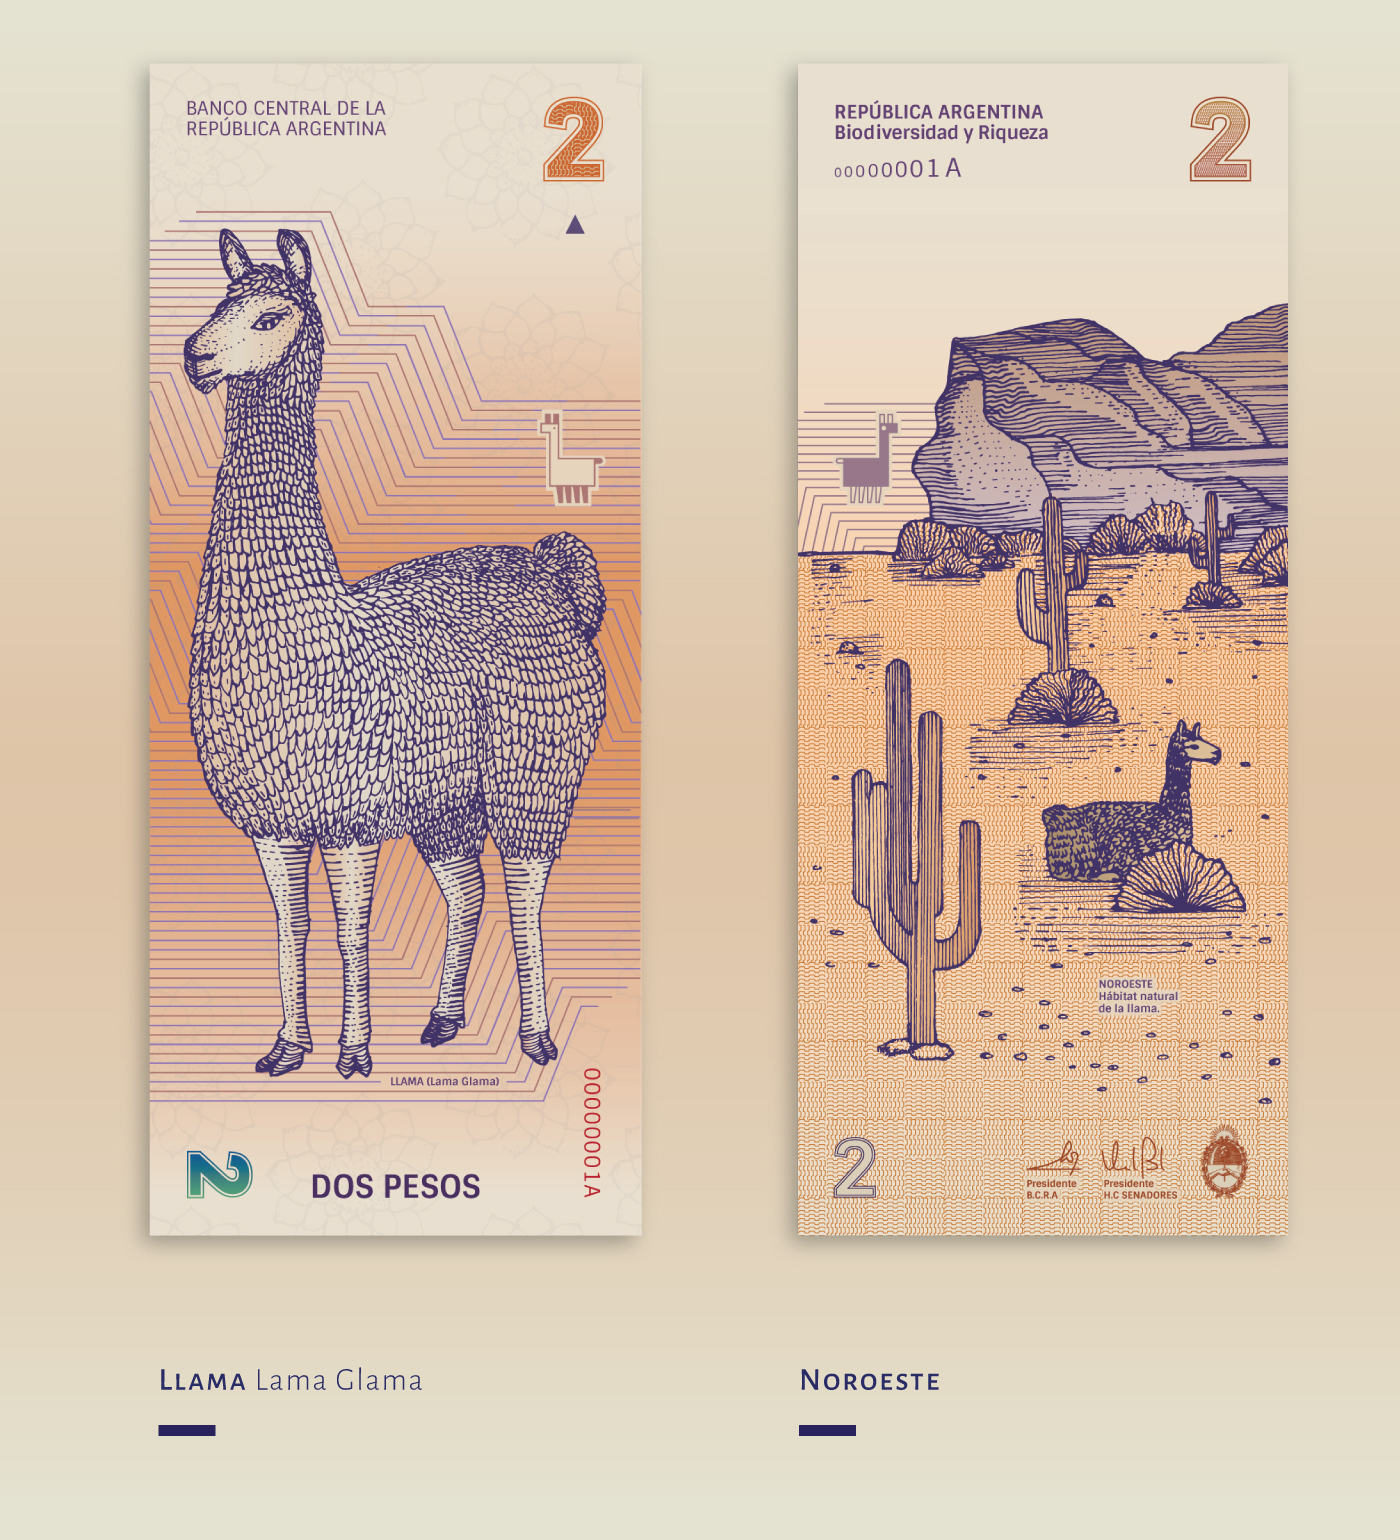 Redesign of the Argentinean Bills